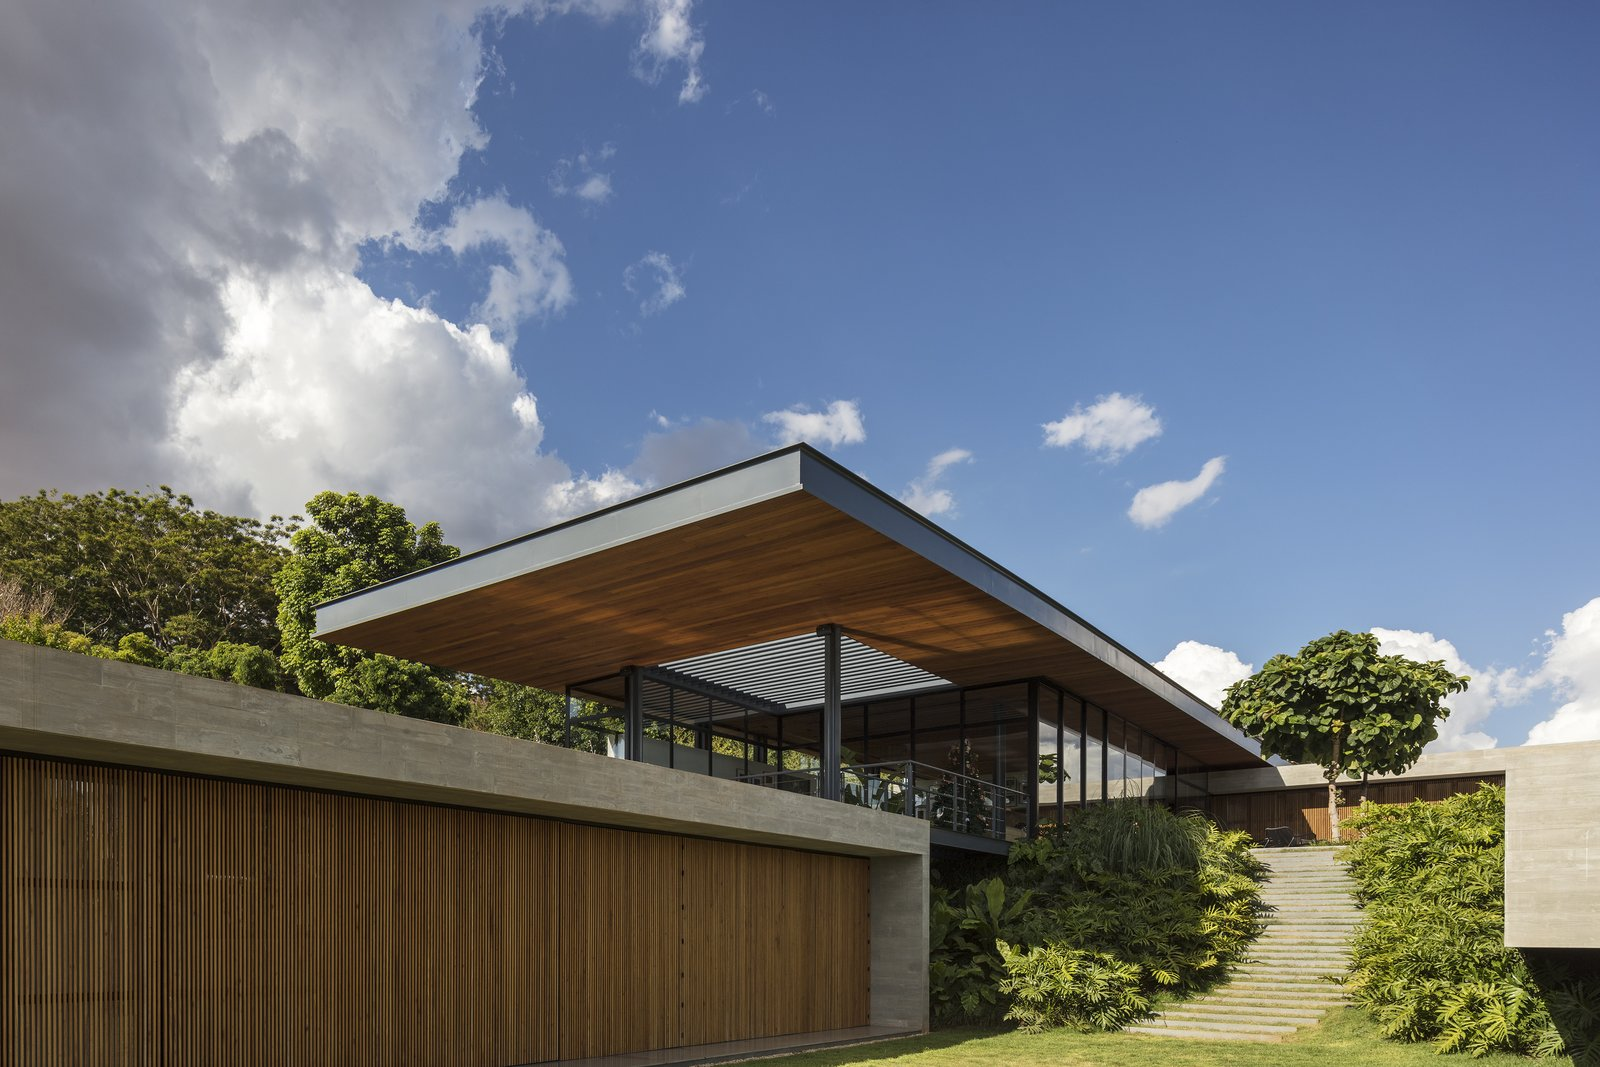 Exterior, Flat RoofLine, House Building Type, Metal Siding Material, Concrete Siding Material, Glass Siding Material, and Wood Siding Material Wood screens provide privacy to the lower level, while allowing for ventilation in this hot, humid climate.   Photo 4 of 12 in A Green Roof Helps Camouflage This Striking Home in Brazil